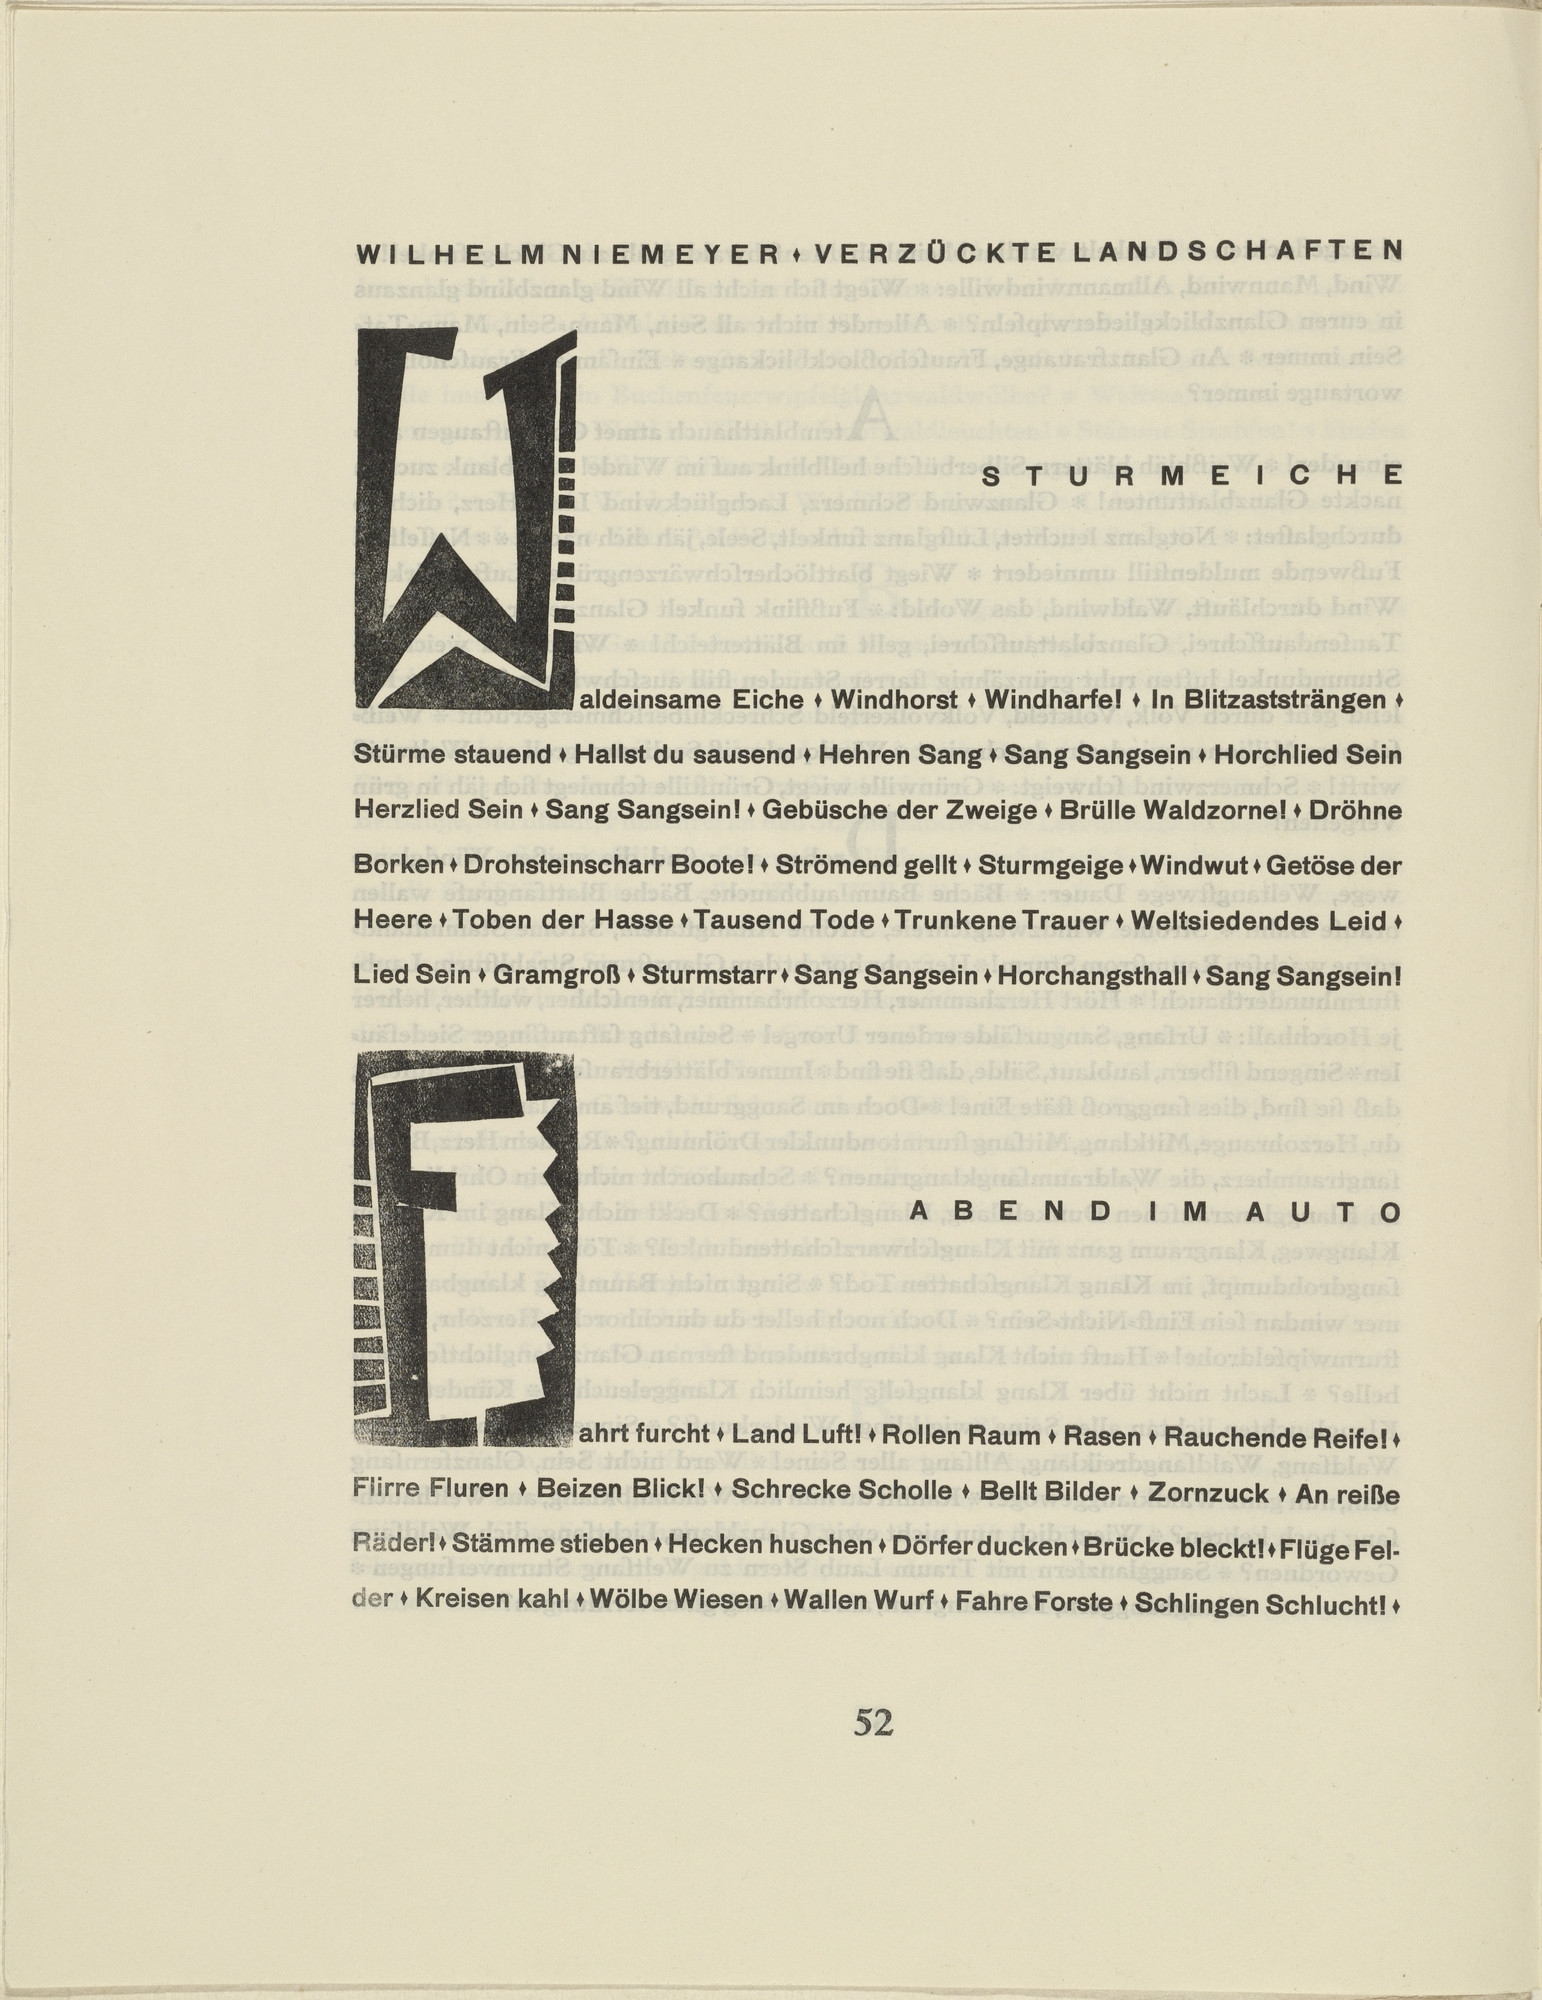 Karl Schmidt-Rottluff. Ornamental initial 'W' (Buchstabe 'W') from the periodical Kündung, vol. 1, no. 4, 5, 6 (April, May, June 1921). 1921 (executed 1920)